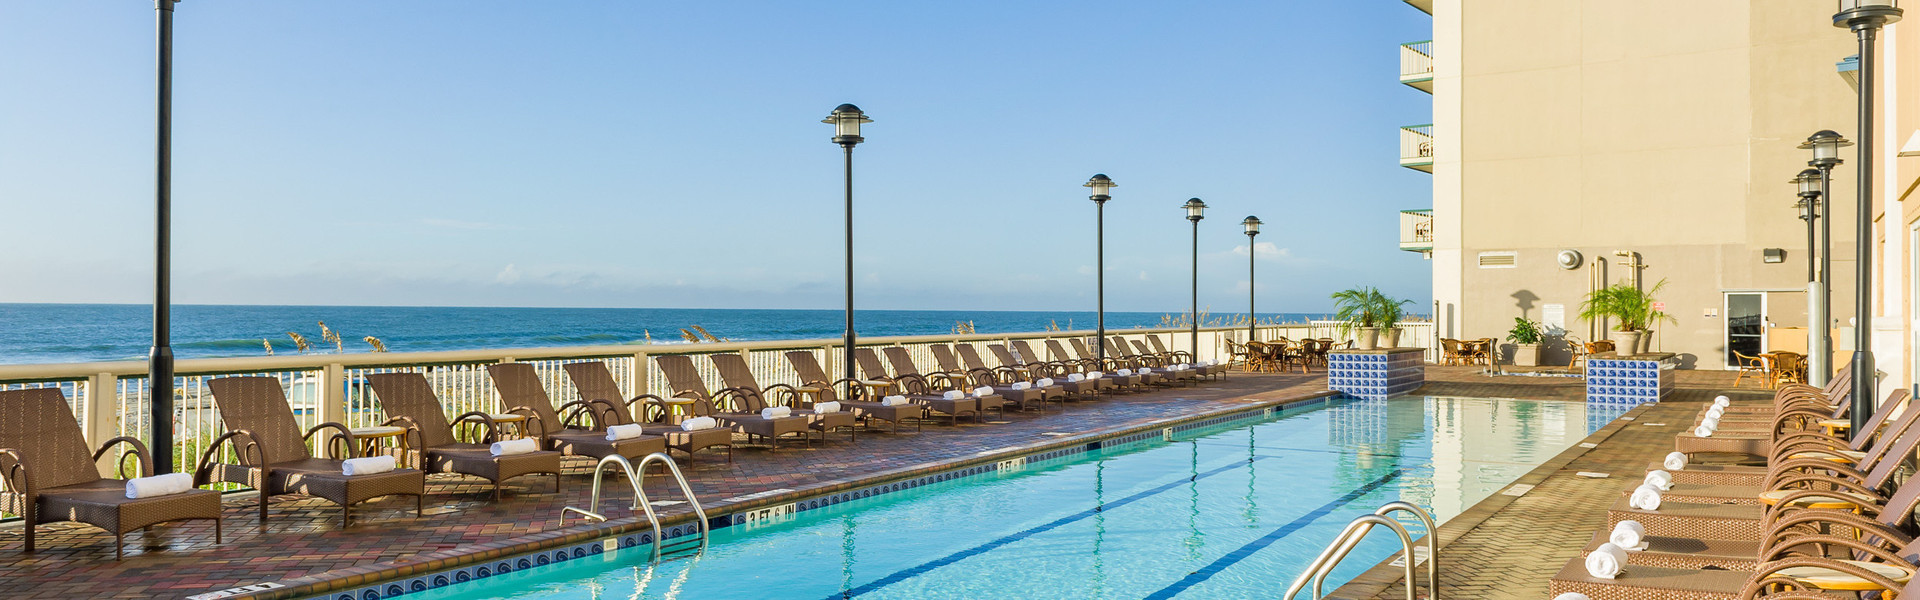 Reviews for our Myrtle Beach Resort and Oceanfront Hotel | Lap Pool